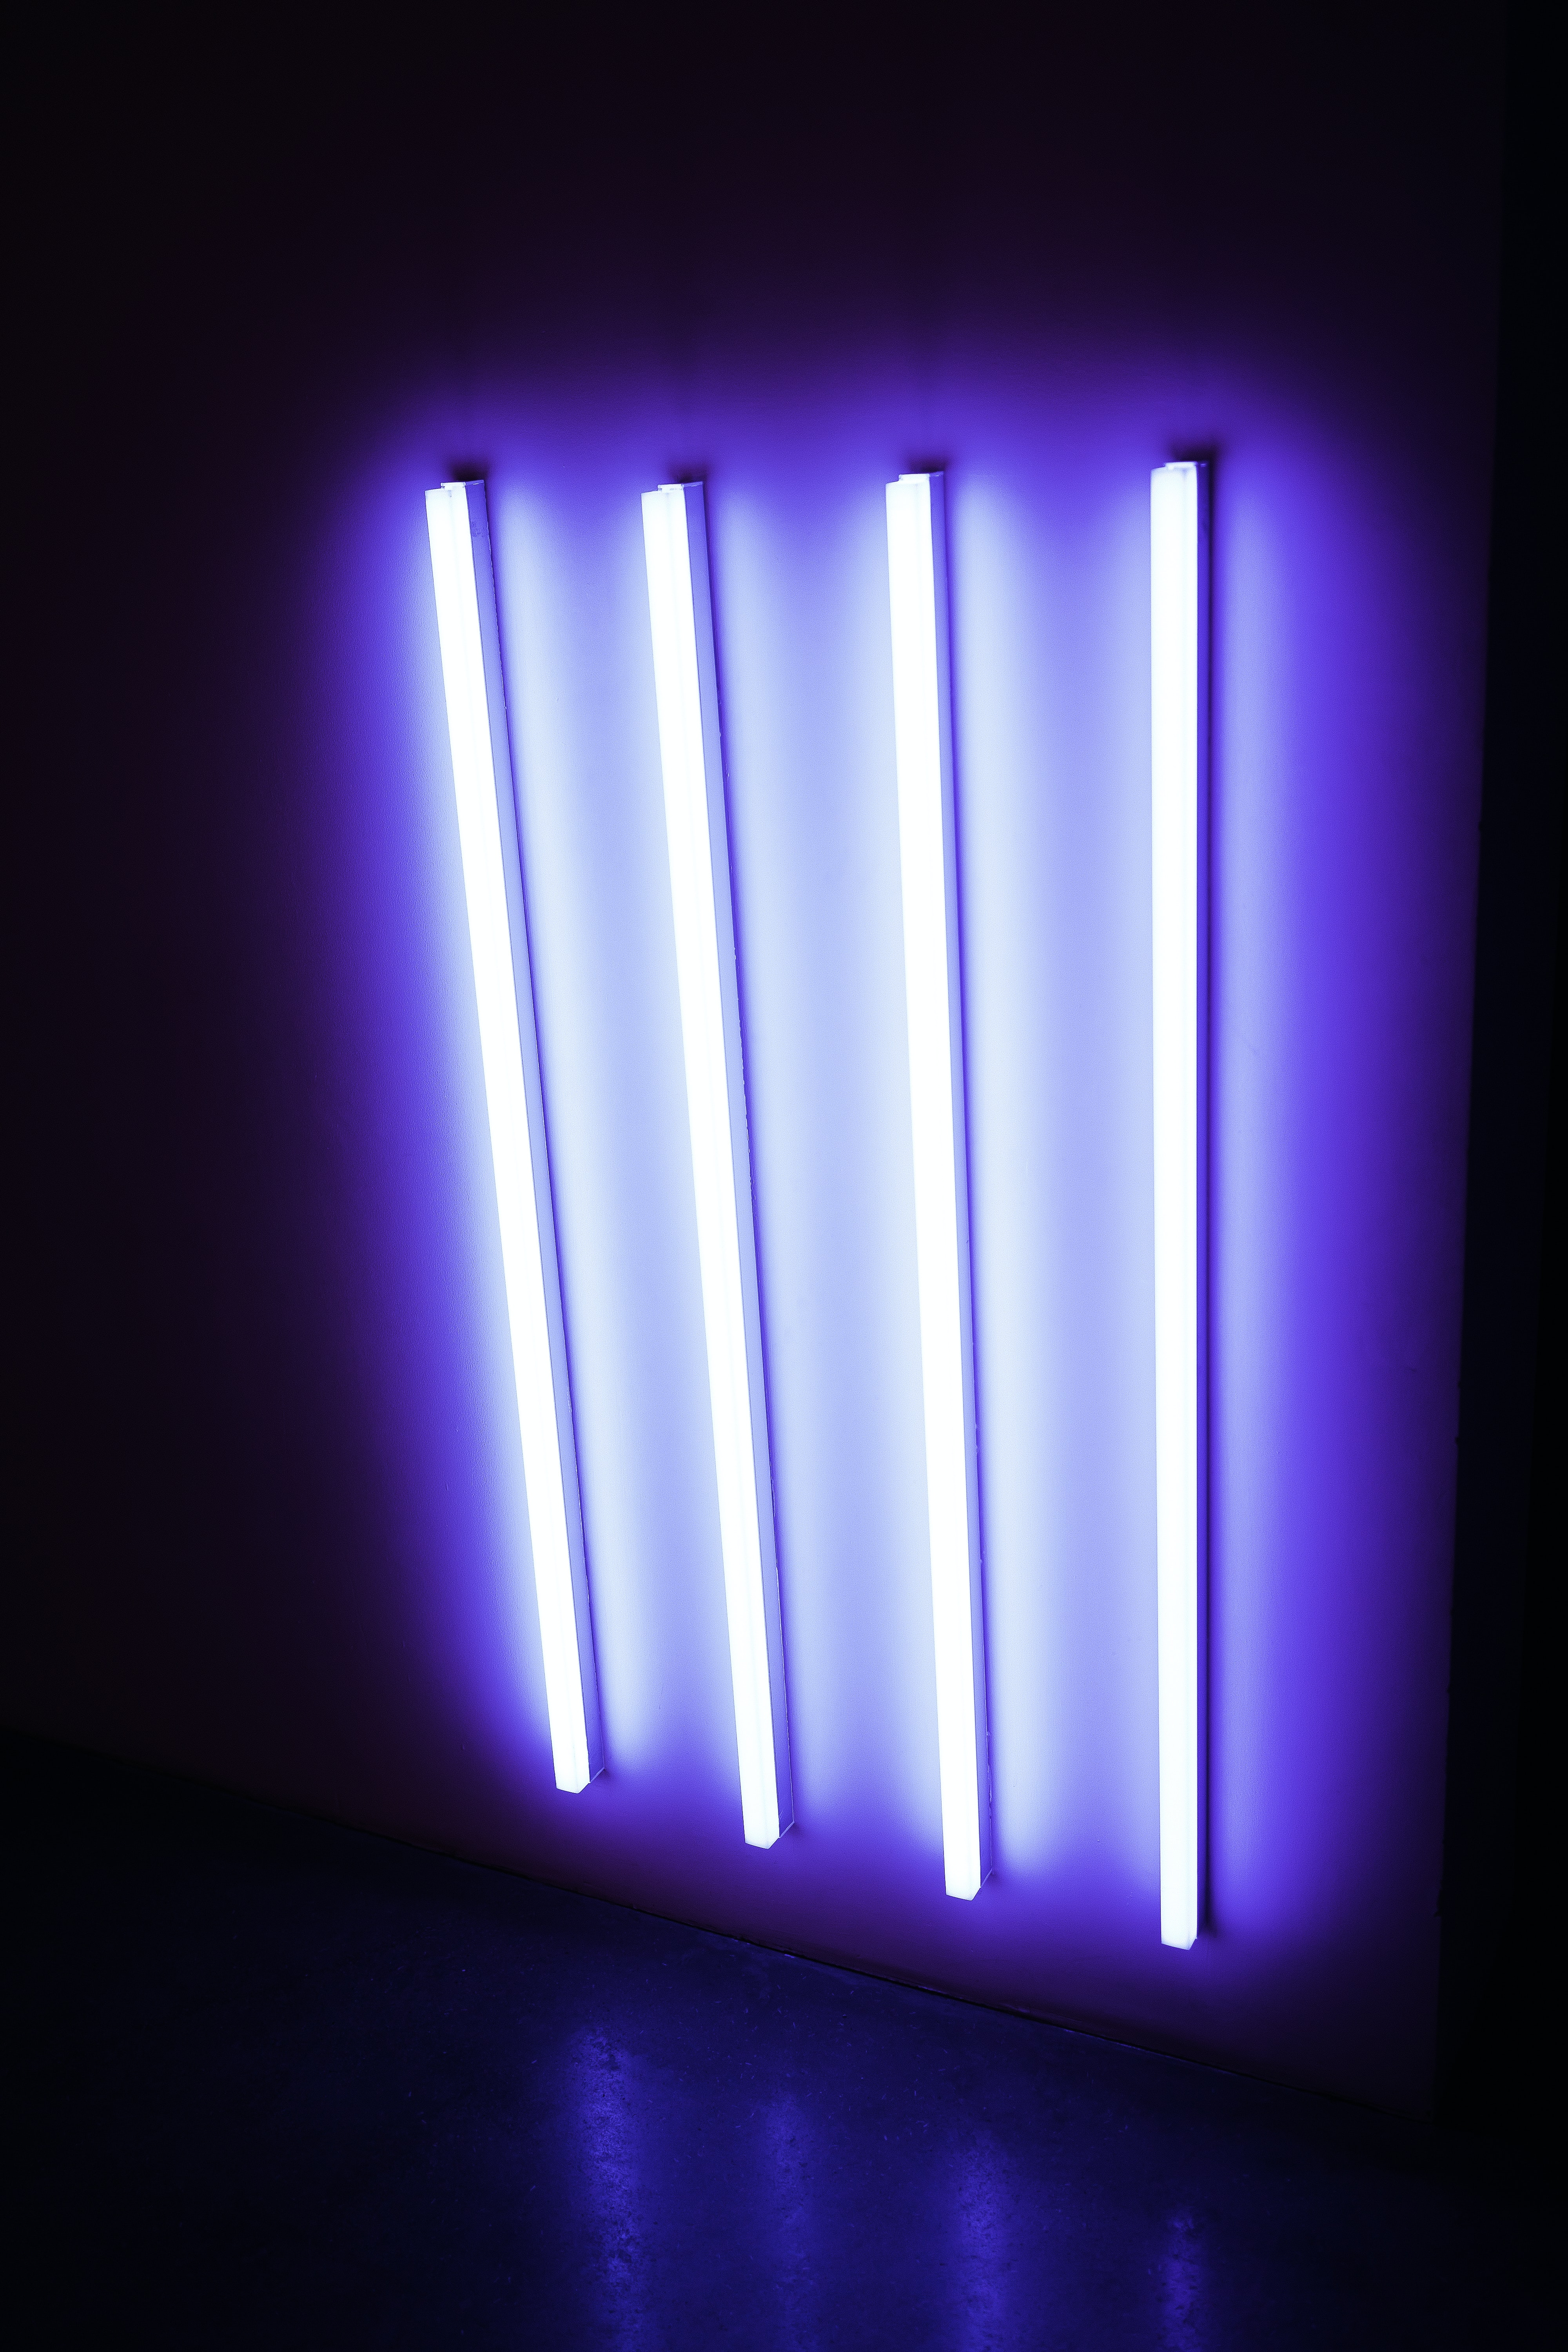 four UV fluorescent lamps turned on